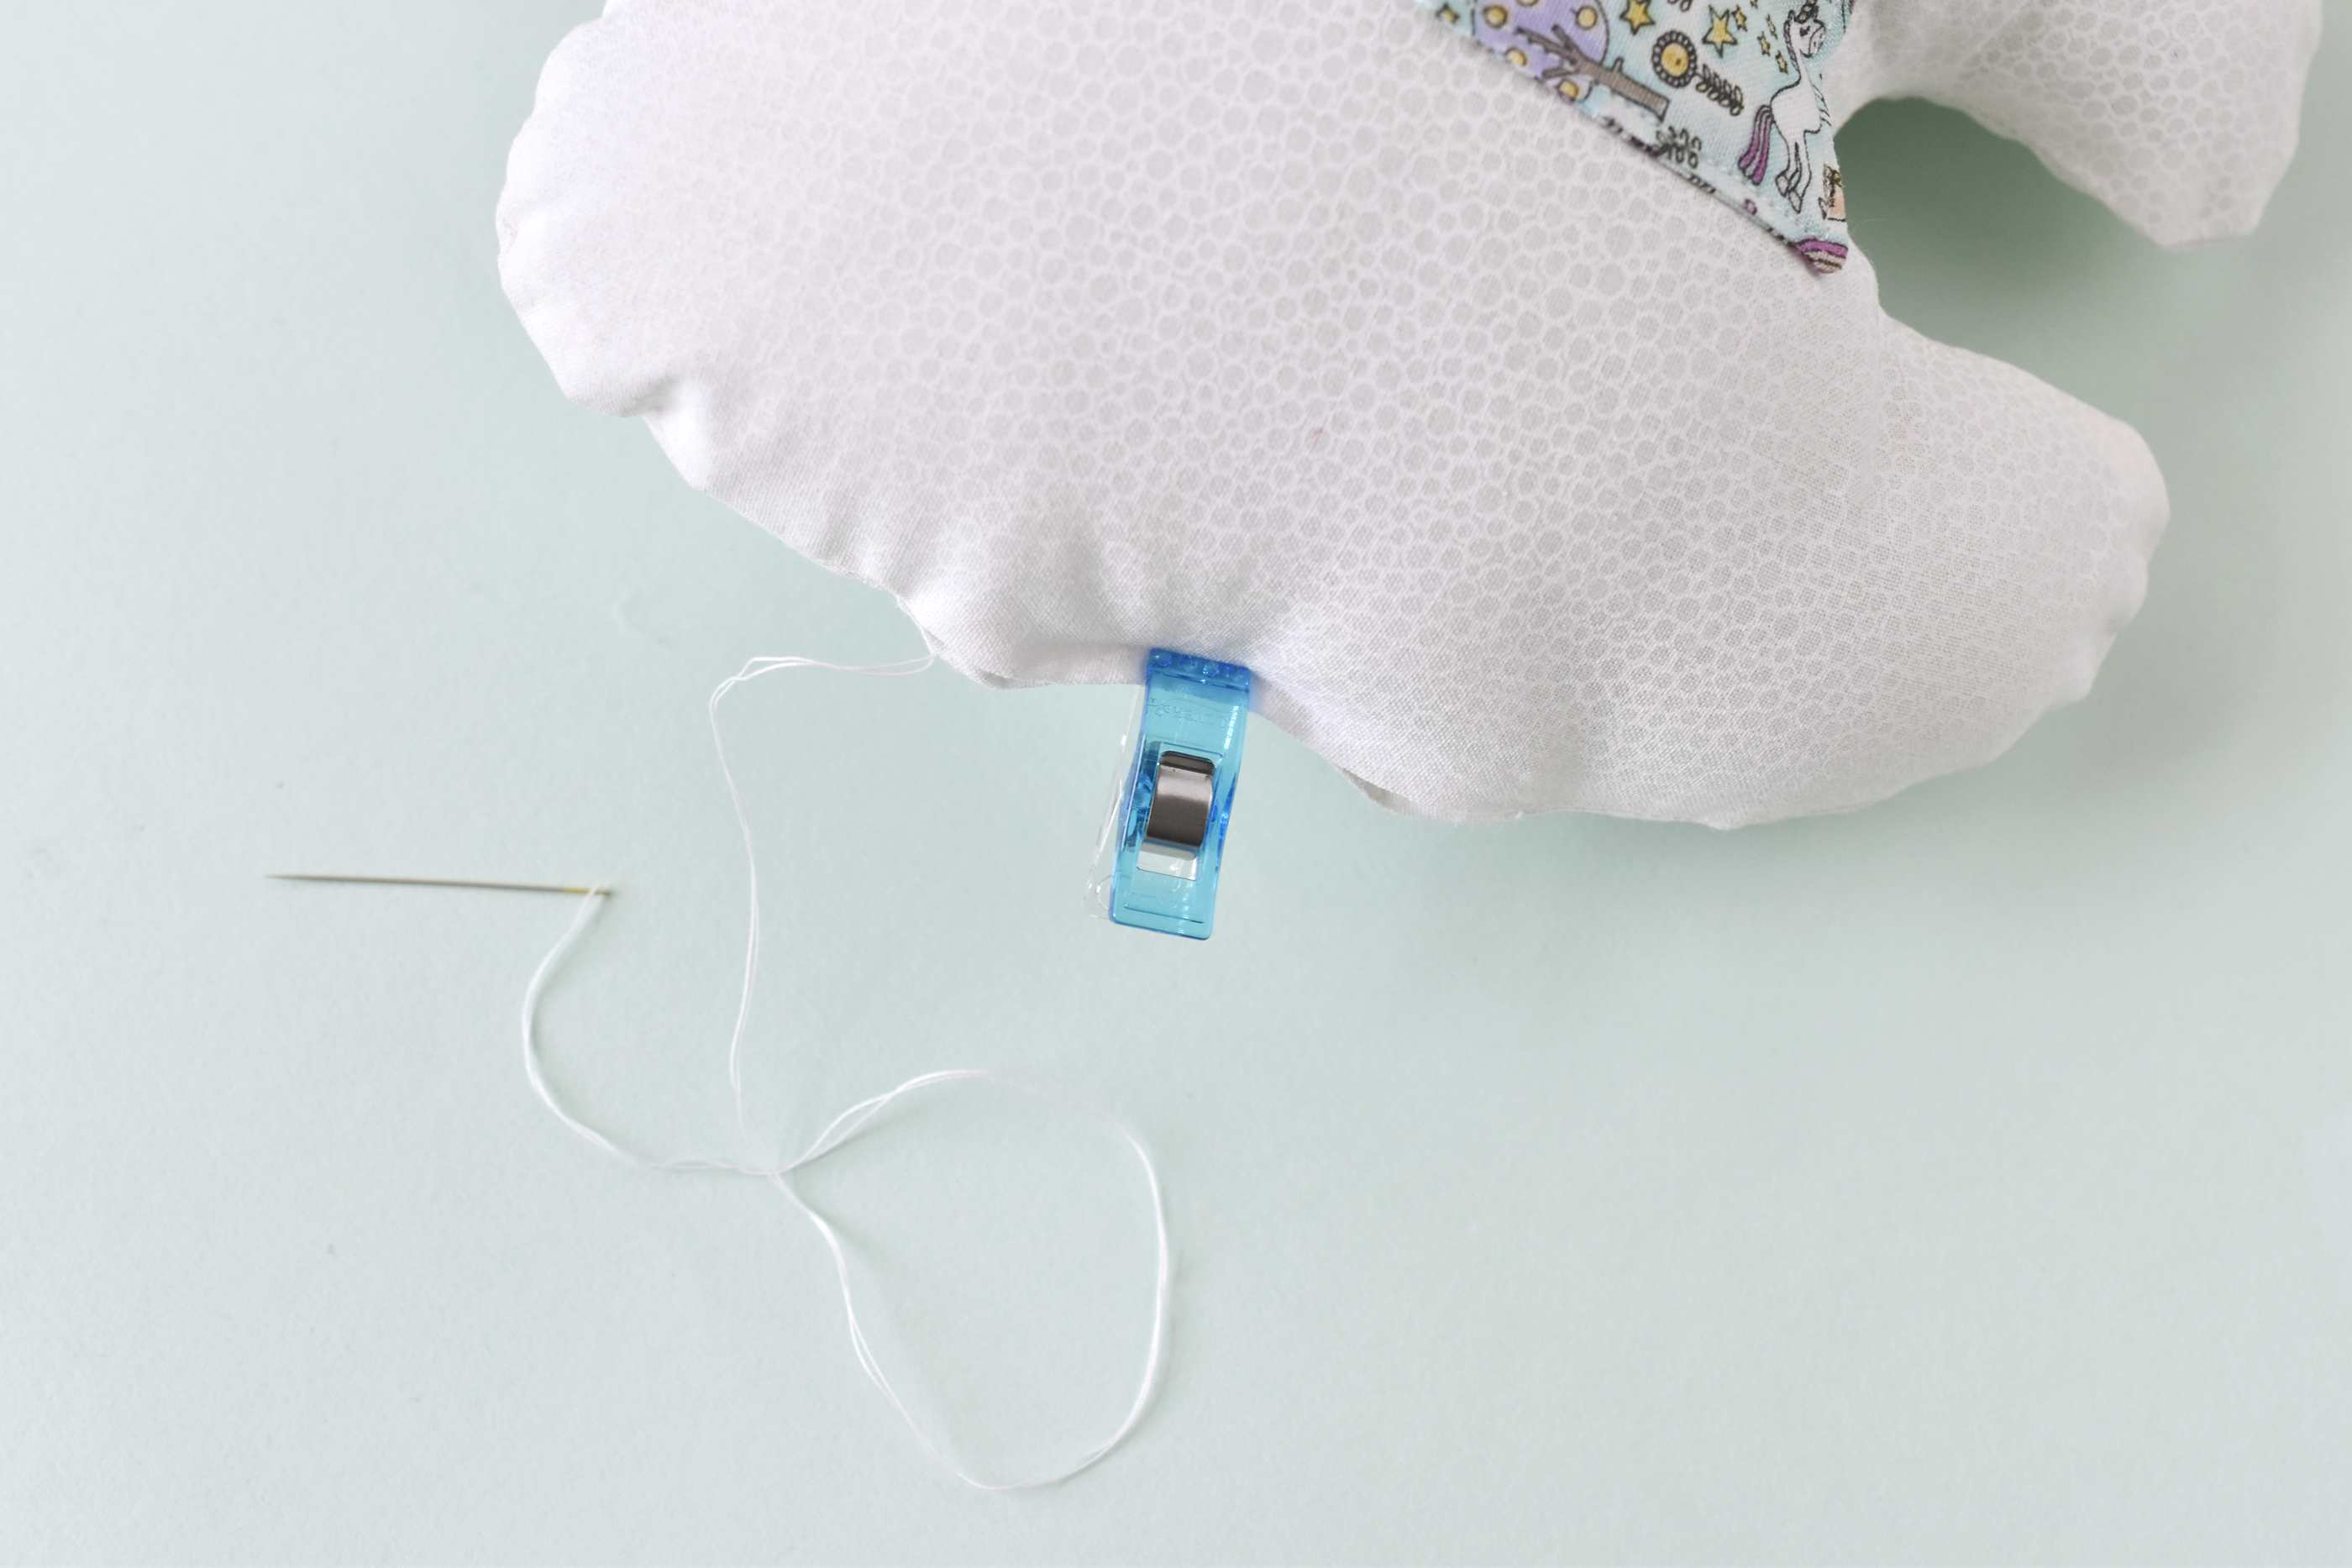 closing the opening of the tooth fairy pillow